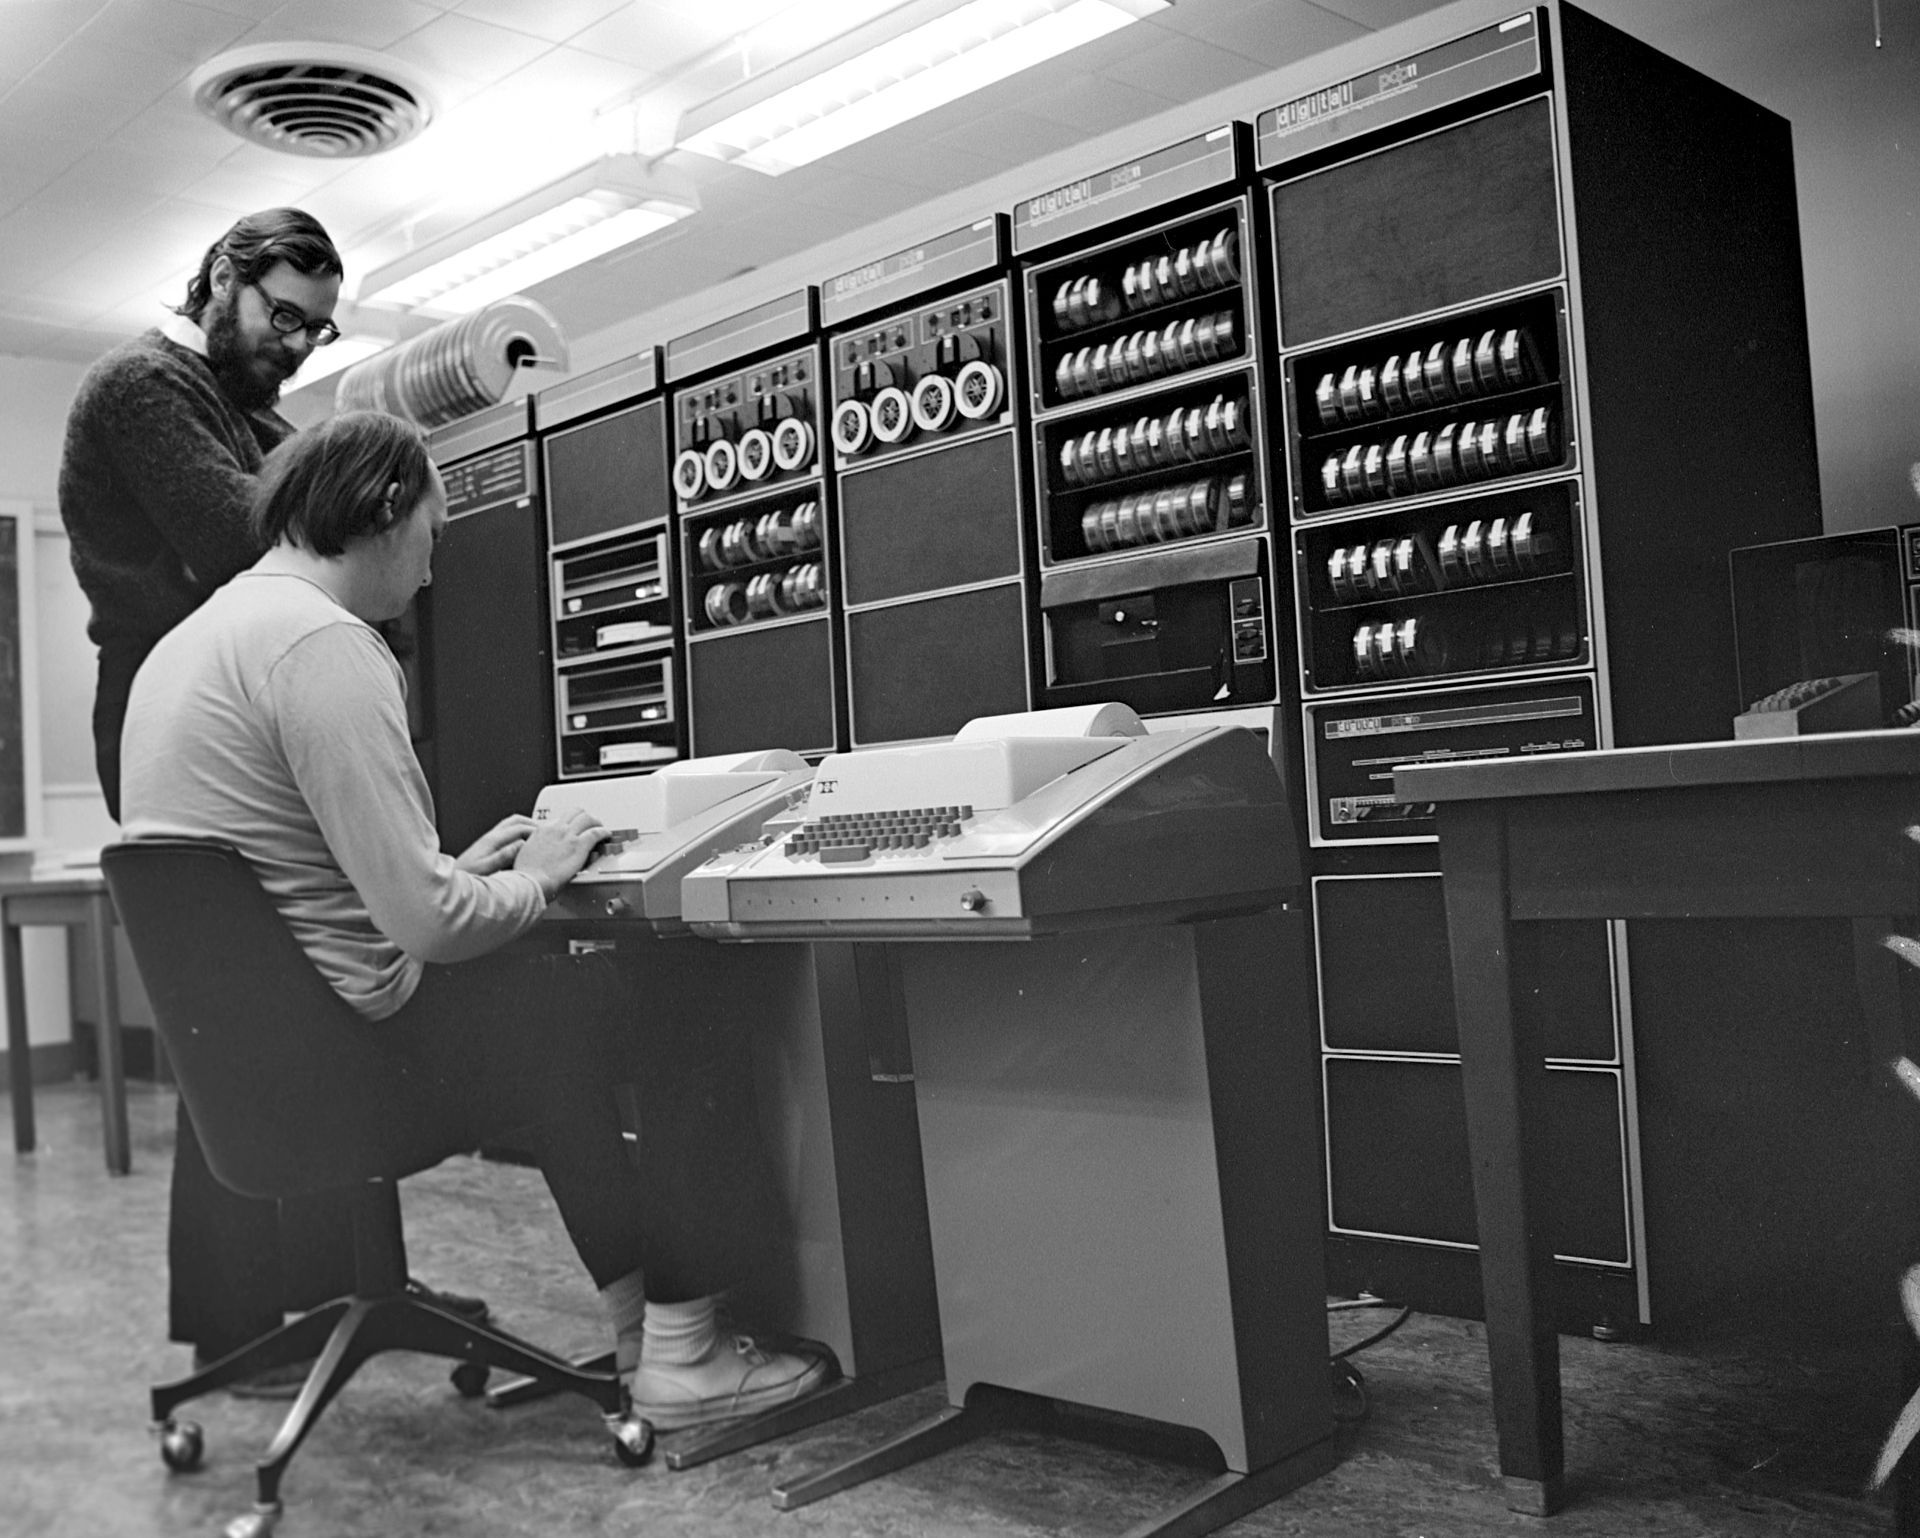 Ken Thompson (sitting) and Dennis Ritchie at PDP-11